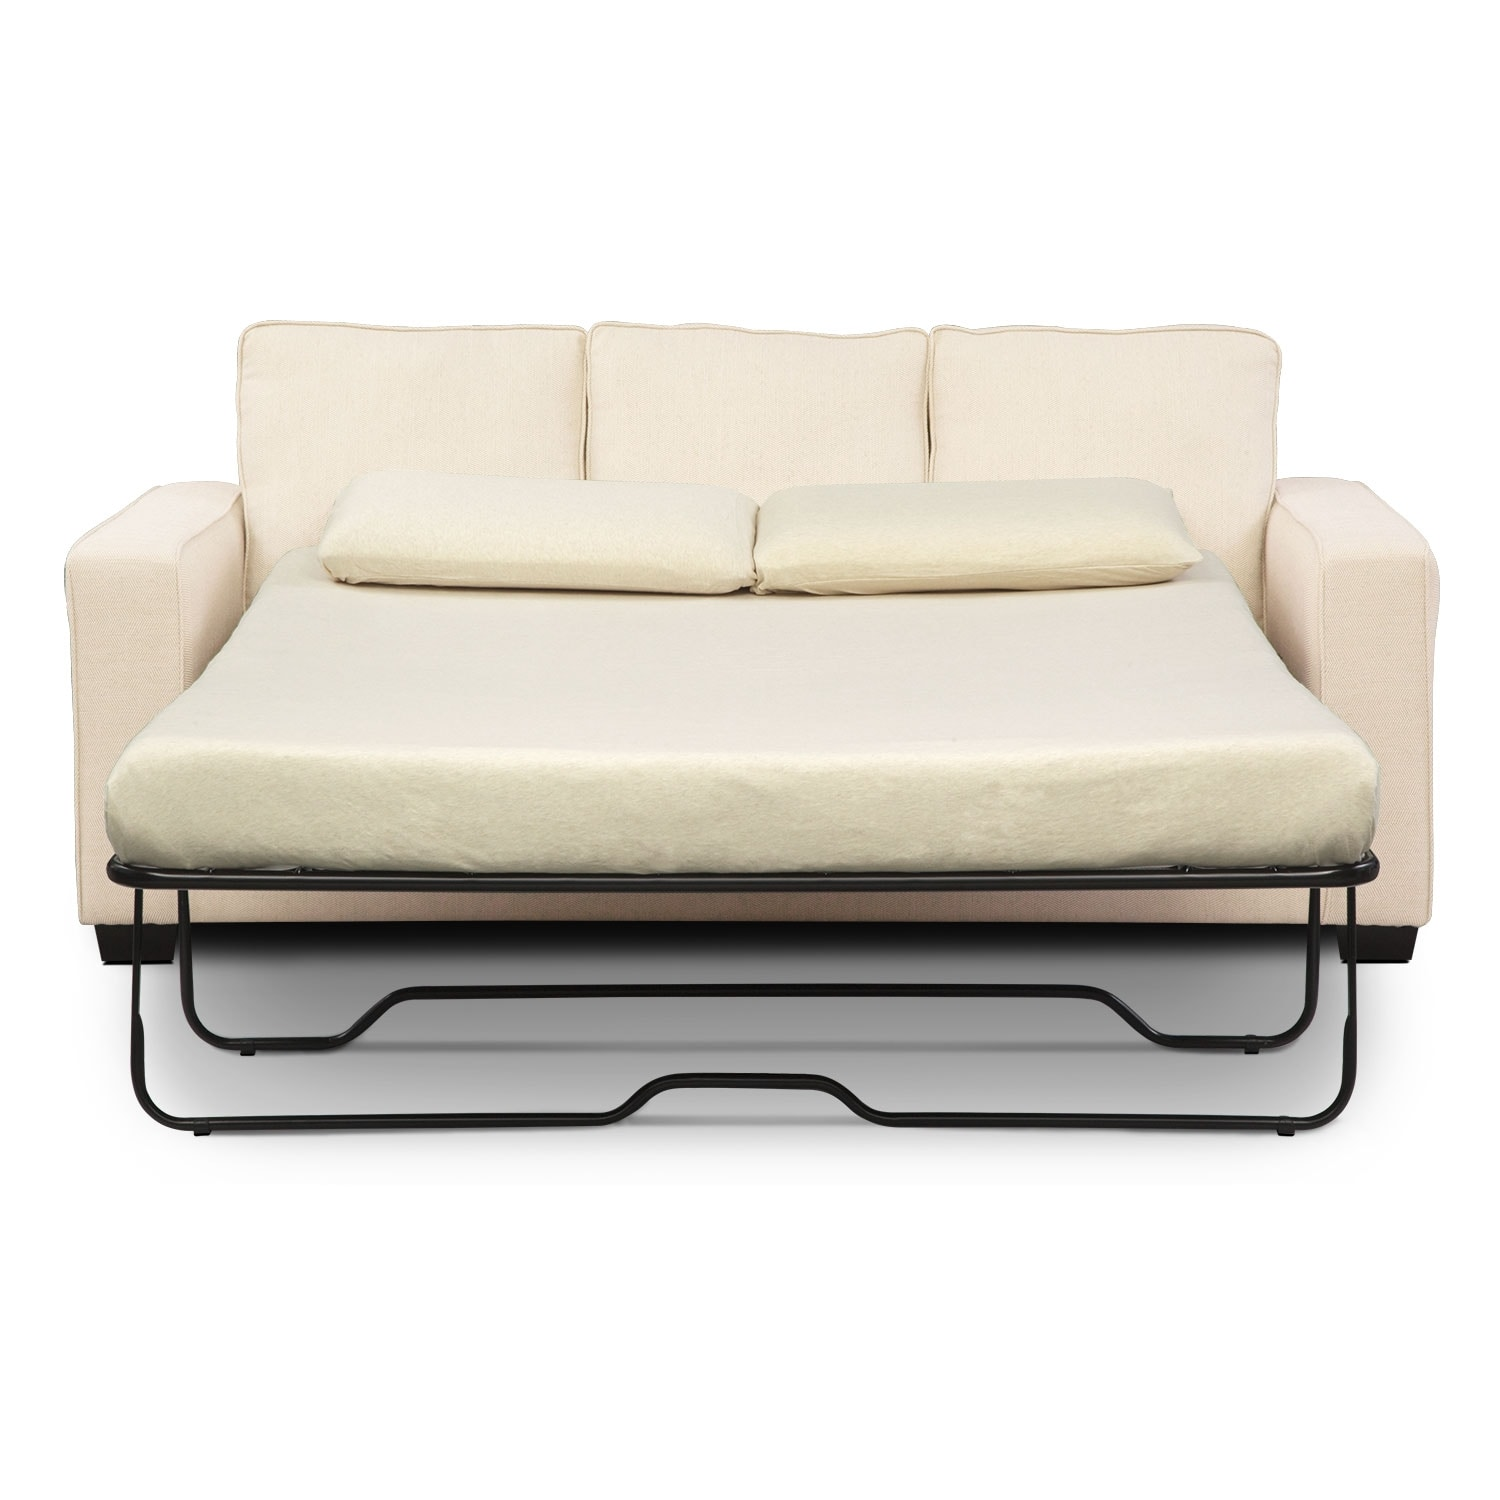 Sterling Innerspring Sleeper Sofa With Chaise Beige Value City Furniture